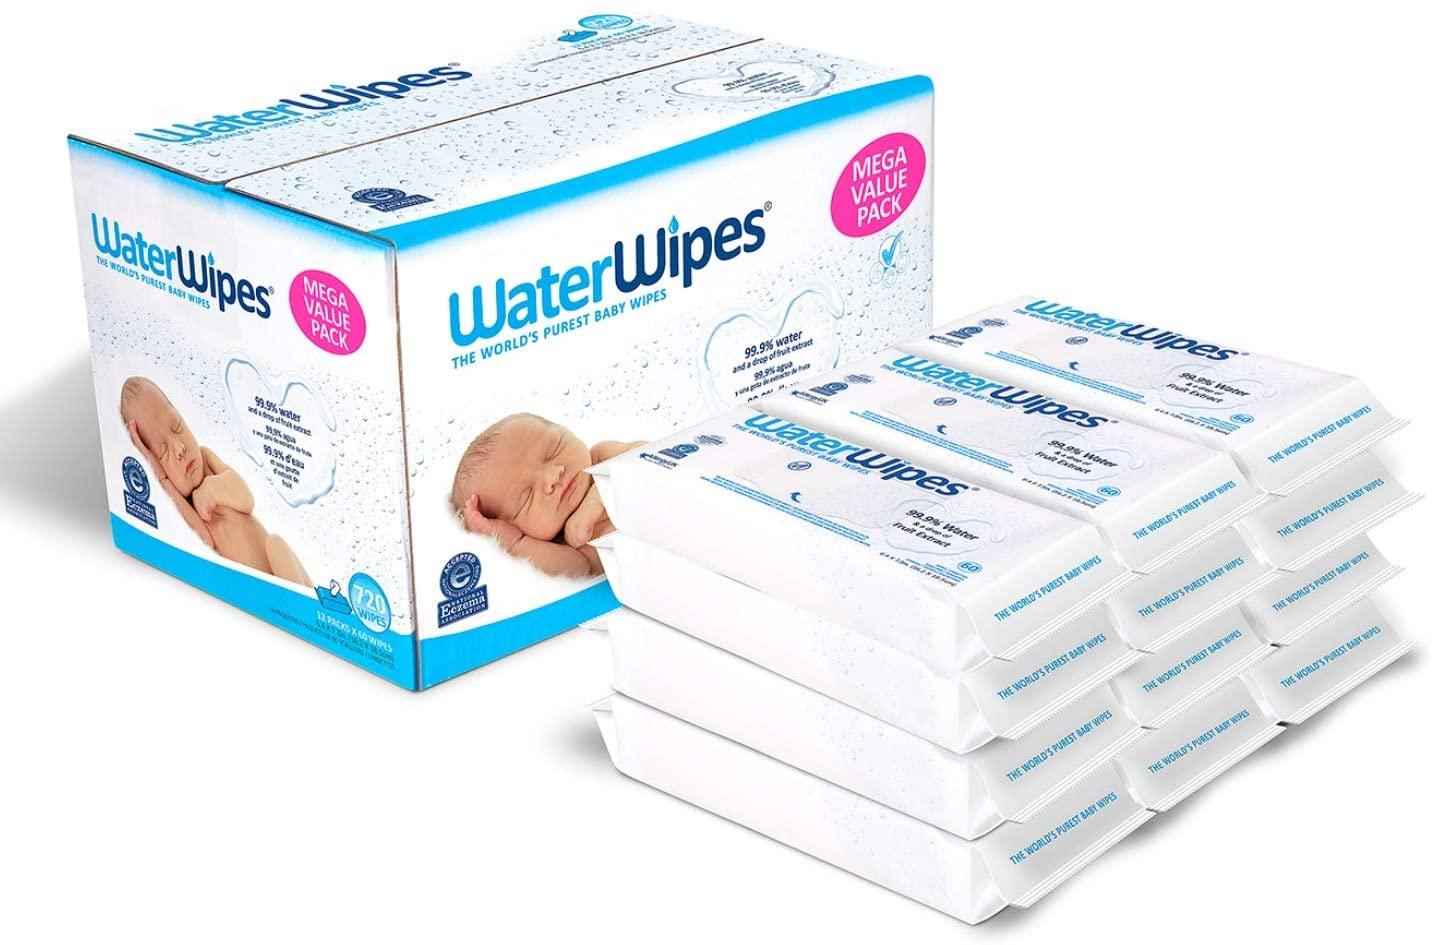 WaterWipes Original Baby Wipes, 99.9% Water, Unscented & Hypoallergenic, for Newborn Skin, 12 Packs (720 Count)